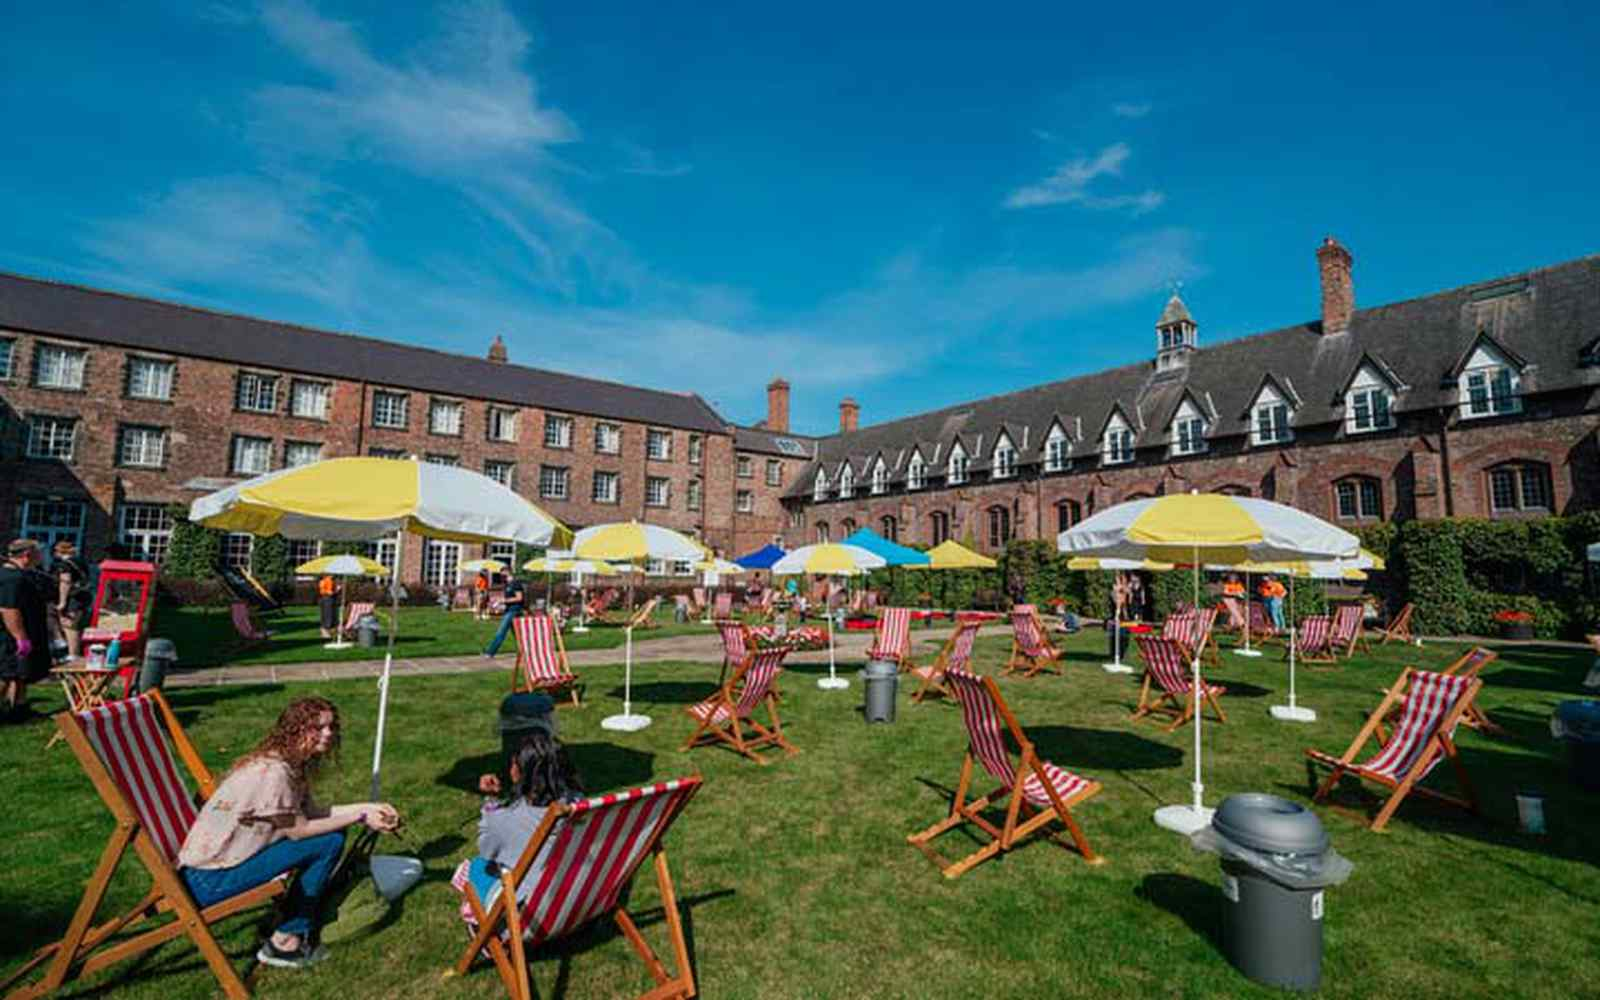 deckchairs and parasols in the quad